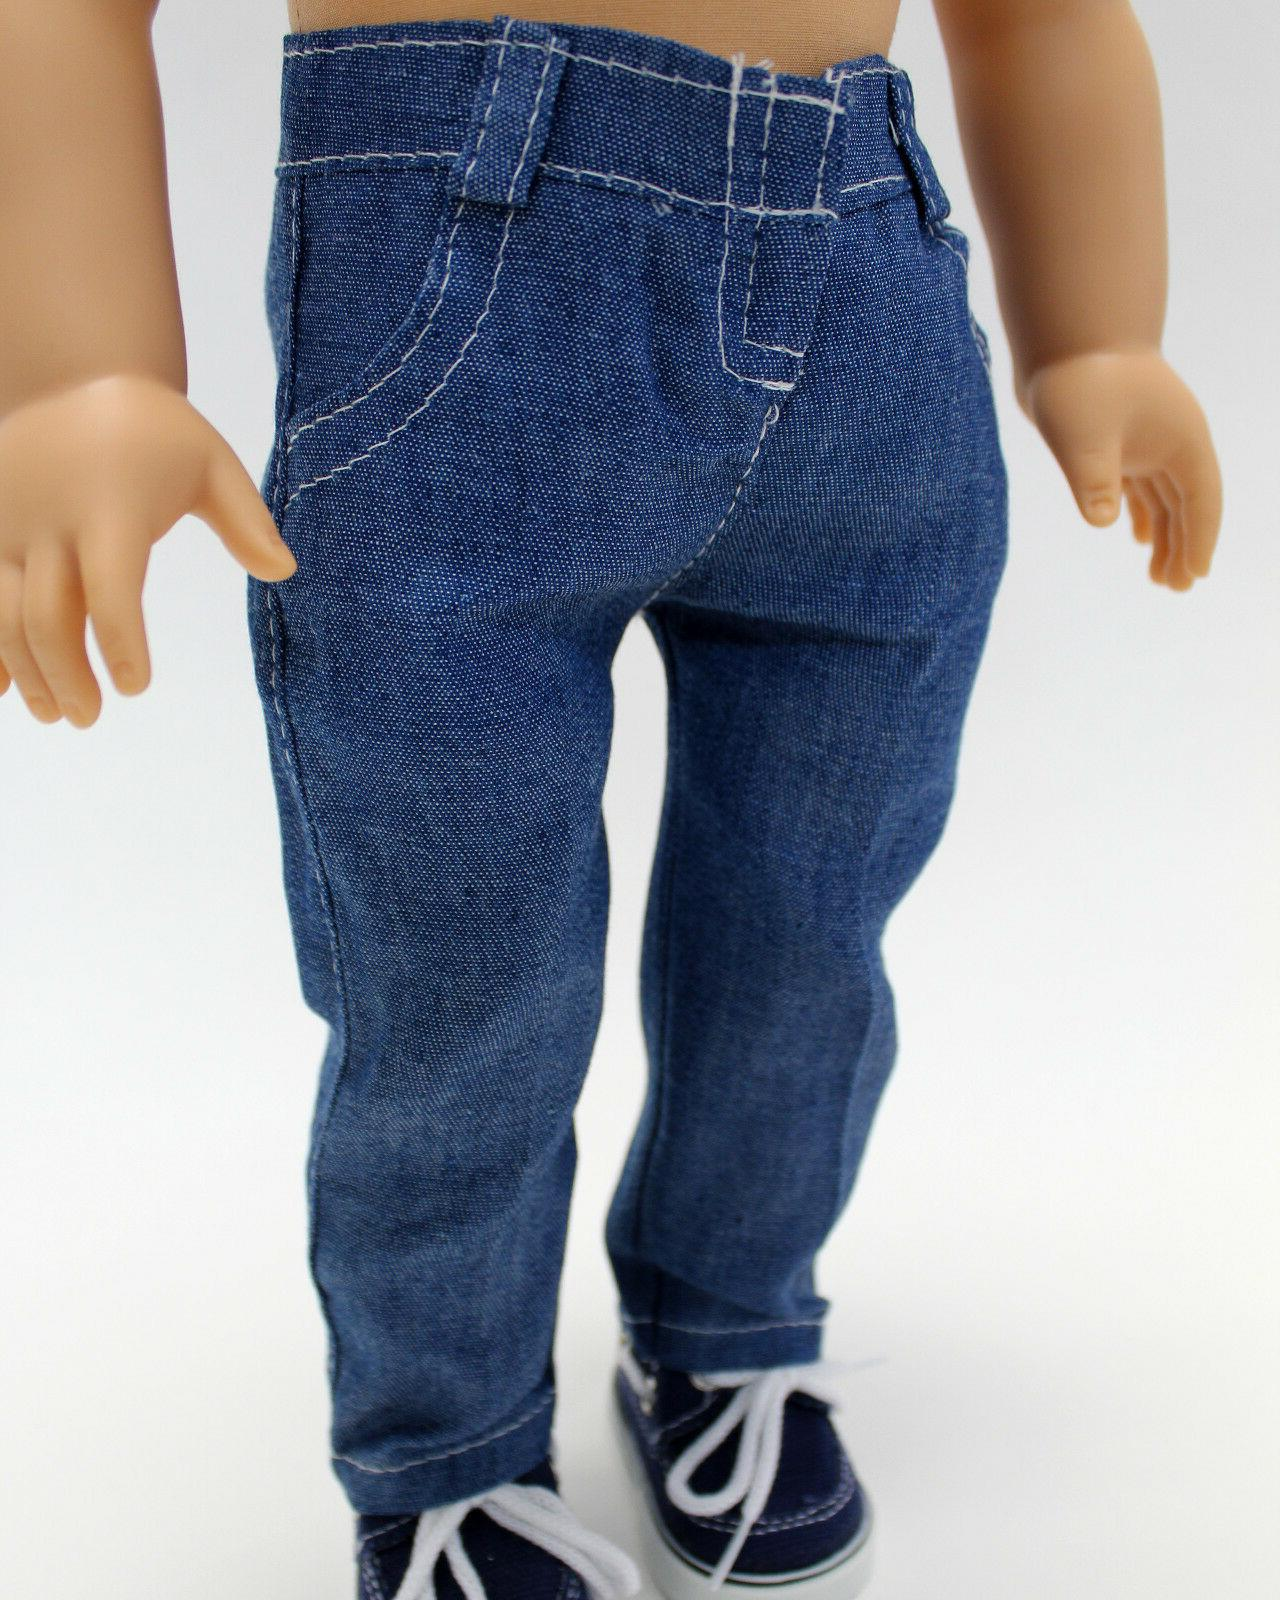 18 Inch Boy Outfit Jeans